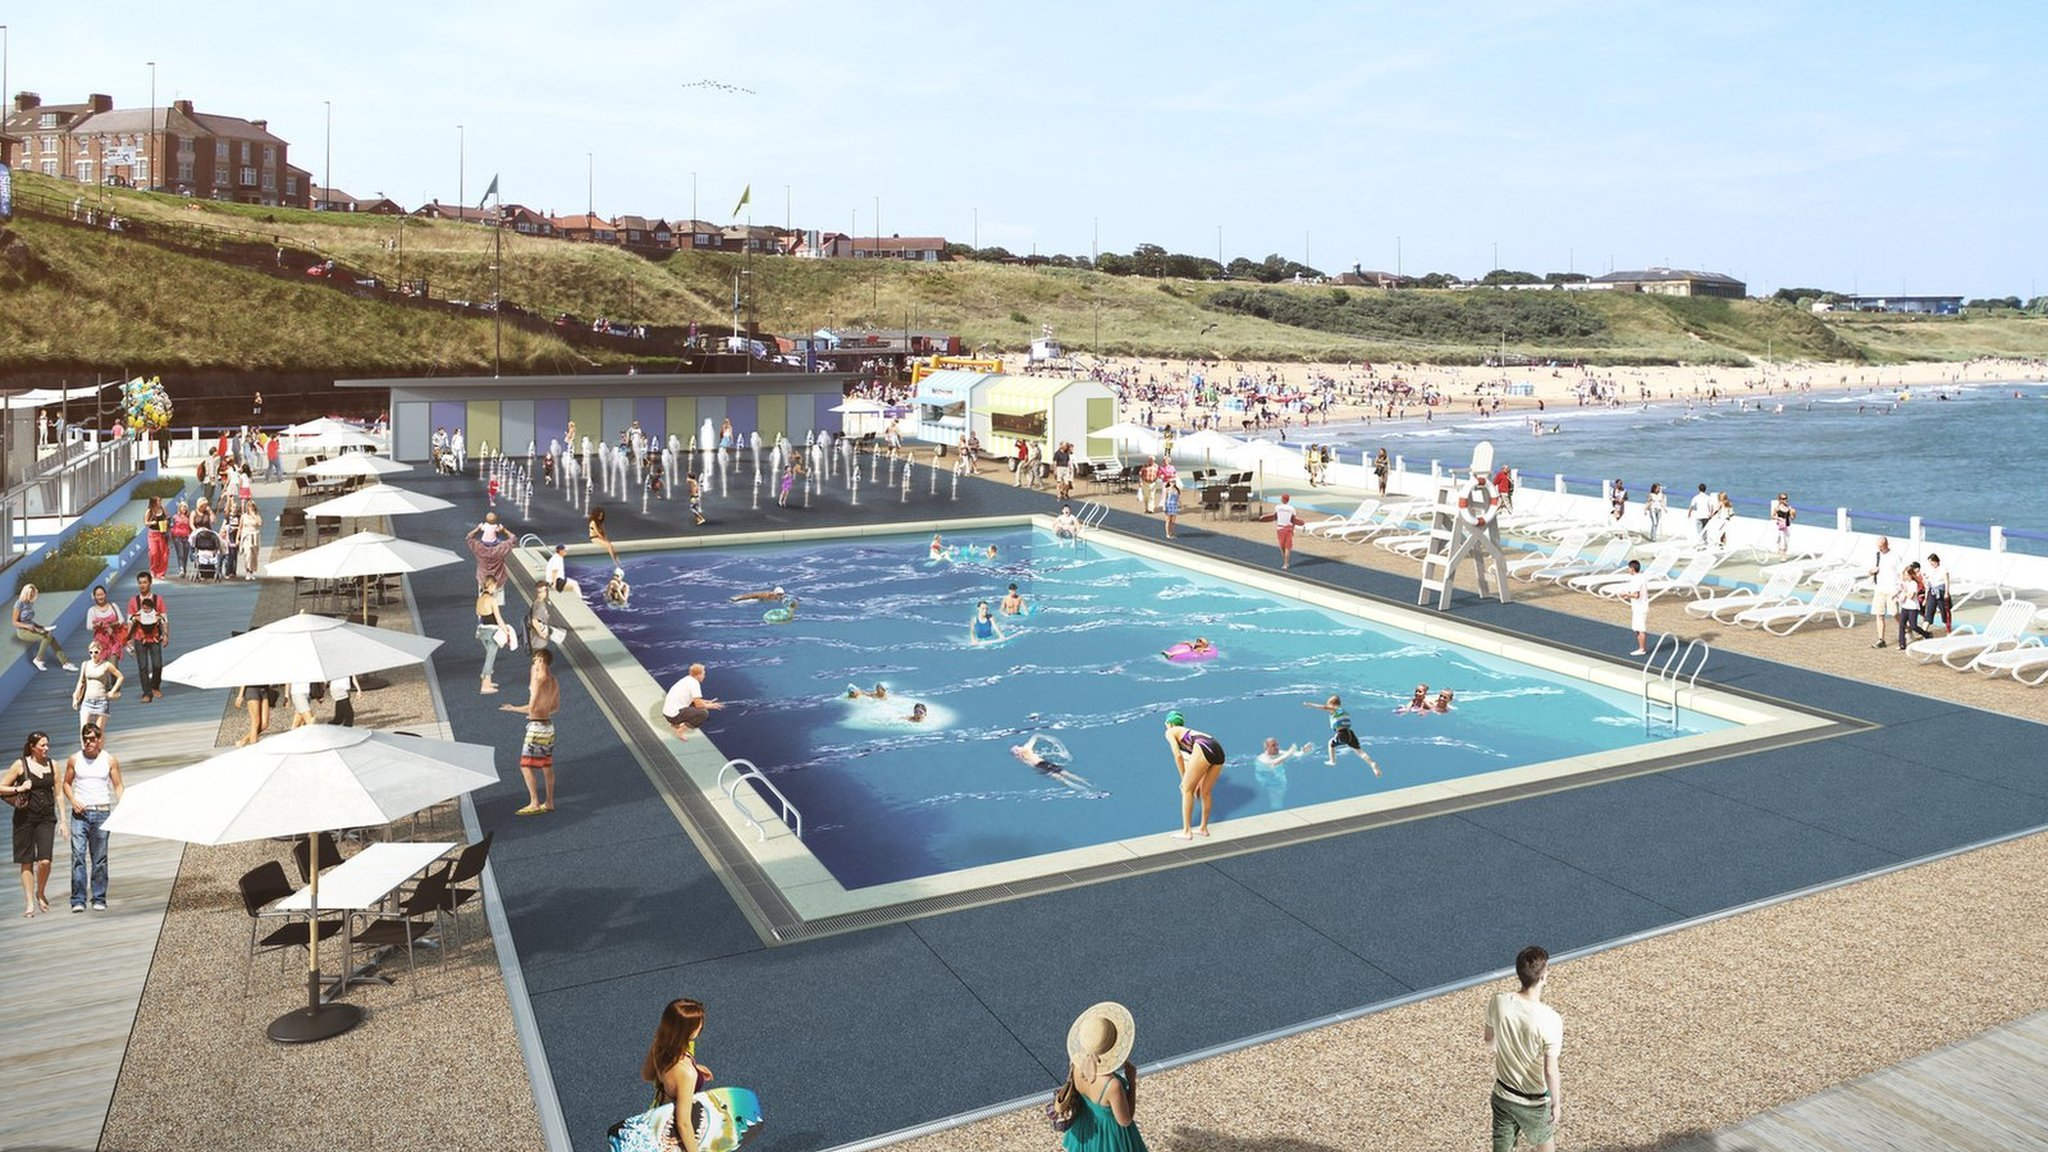 Artist's impression of Tynemouth Outdoor Pool